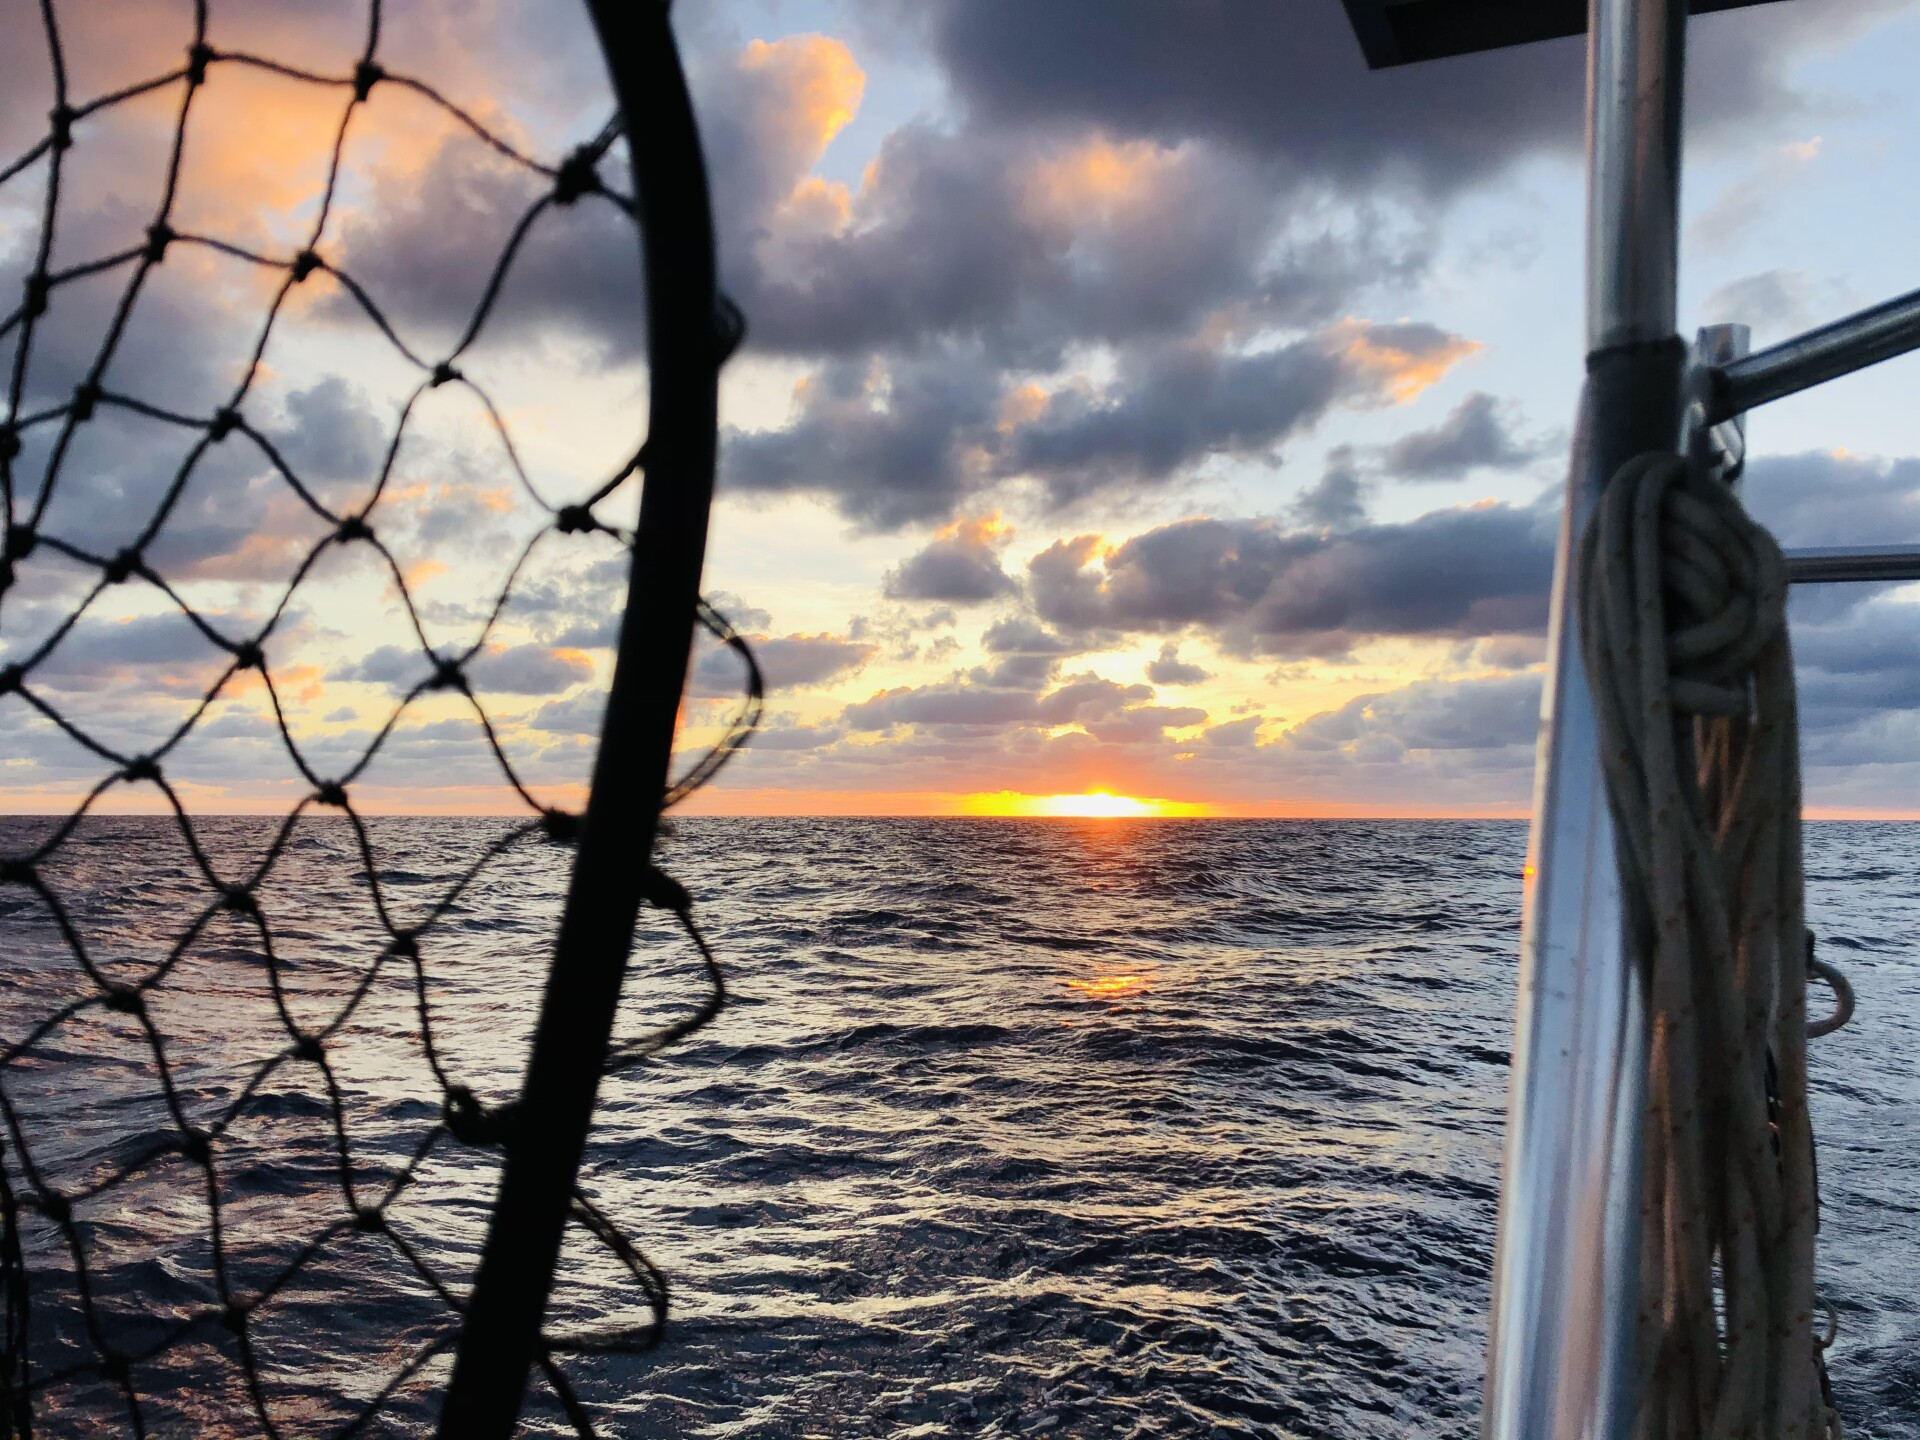 sun rises on horizon view from Marty Widrick and Sven Karrlson's sailboat